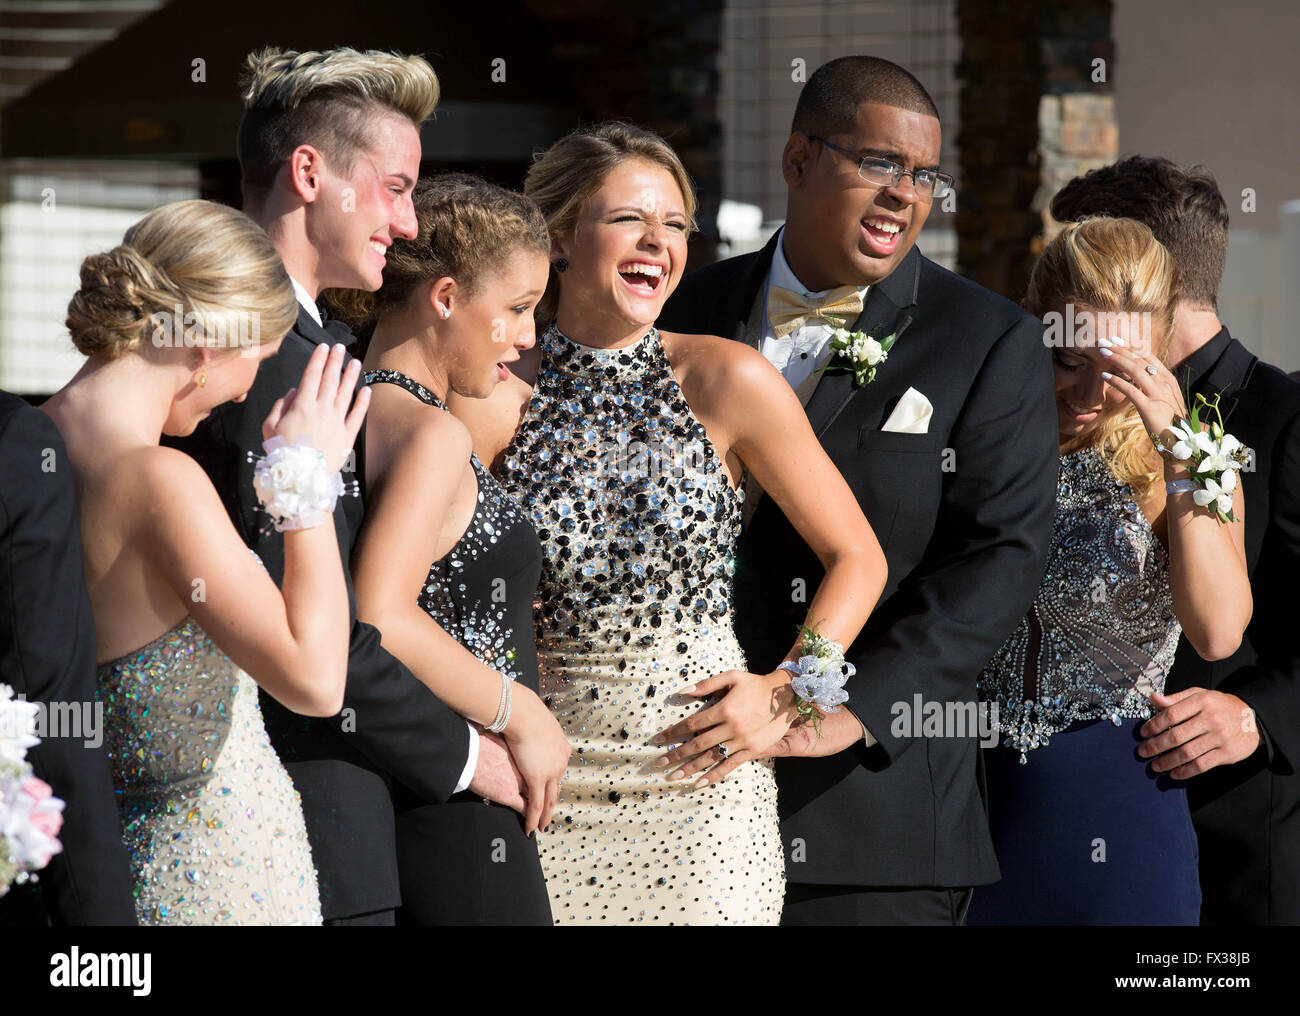 West Palm Beach, Florida, USA. 10th Apr, 2016. Mikal Bartosik with her prom date Jonathan Ramilo break down with - Stock Image